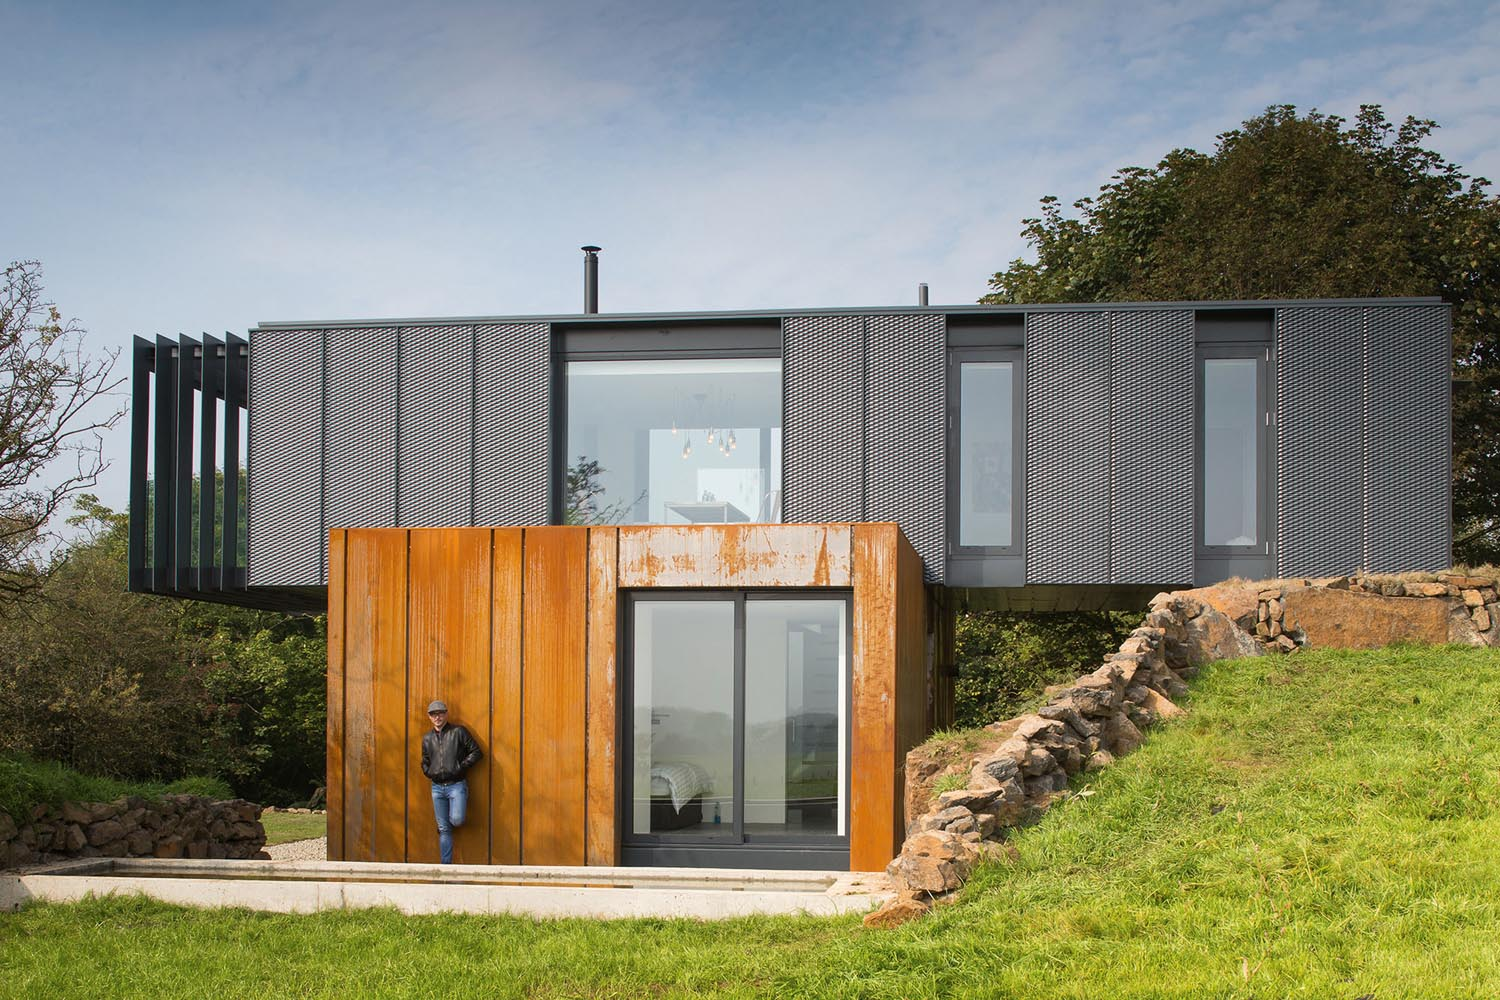 MINIM: Discuss Shipping Container House Derry